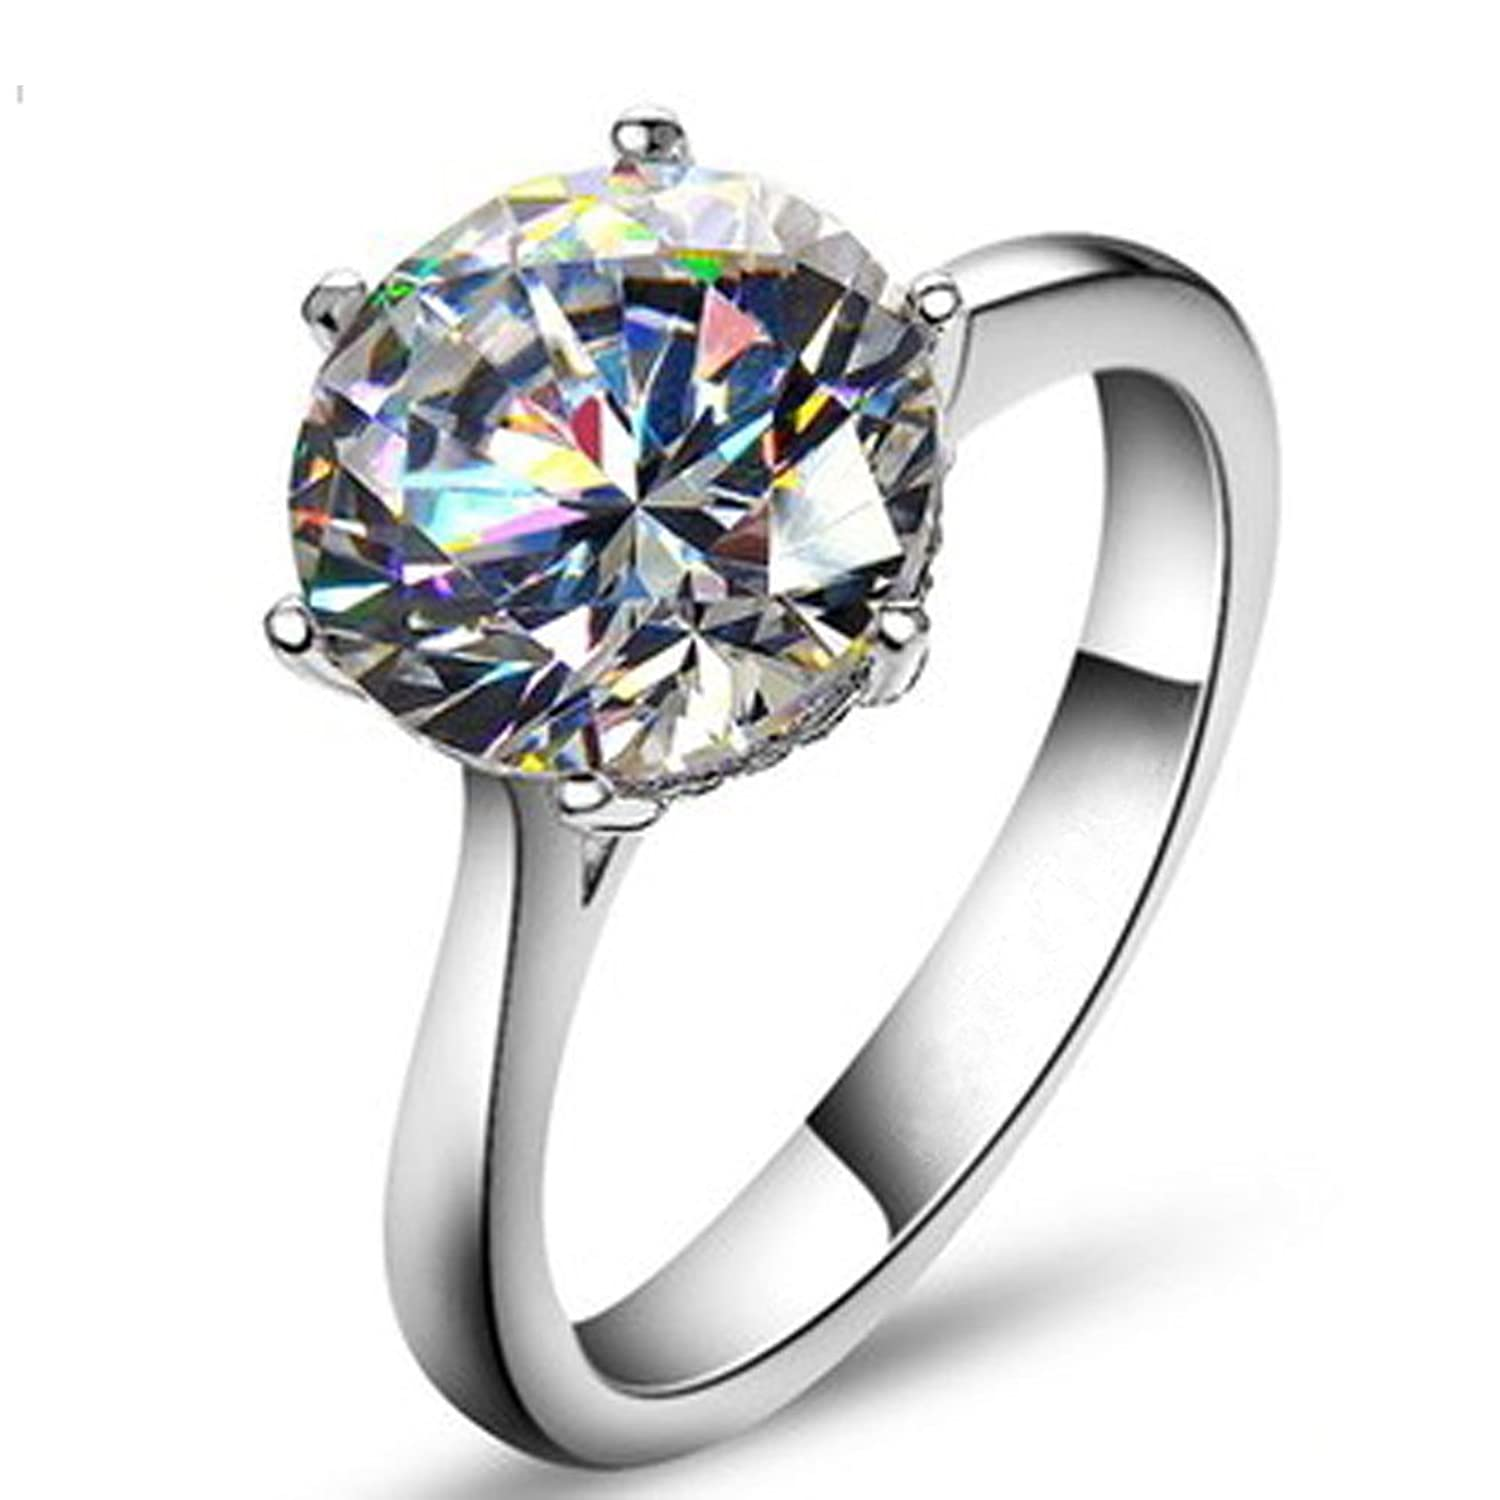 Amazon.com: TenFit Jewelry Elegant 4ct Round Cushion Cut Solitaire Halo  Simulated Diamond Wedding Engagement Ring: Jewelry